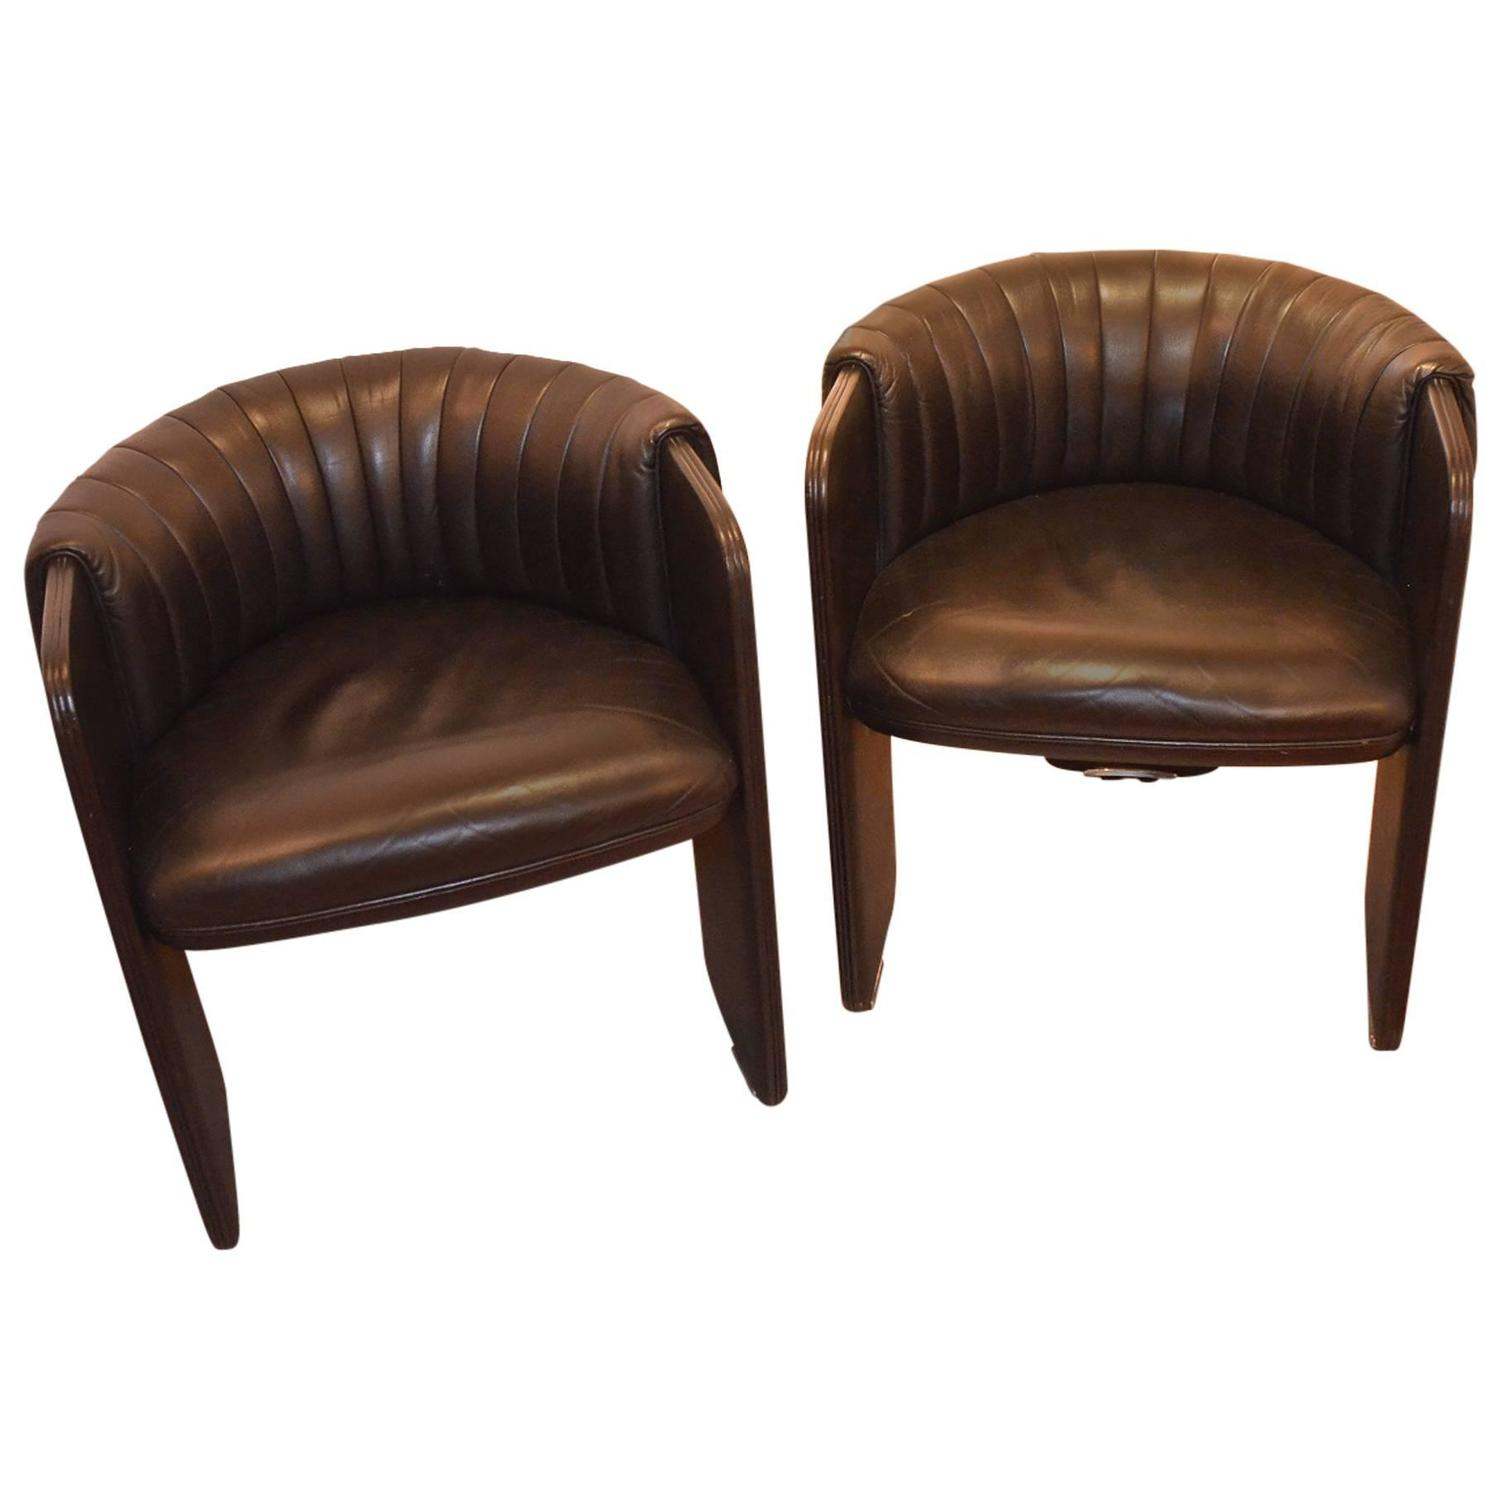 Leather sofa by poltrona frau at 1stdibs - Poltrona Frau Pair Of Vintage Black Leather Armchairs Dinette By Luigi Massoni At 1stdibs